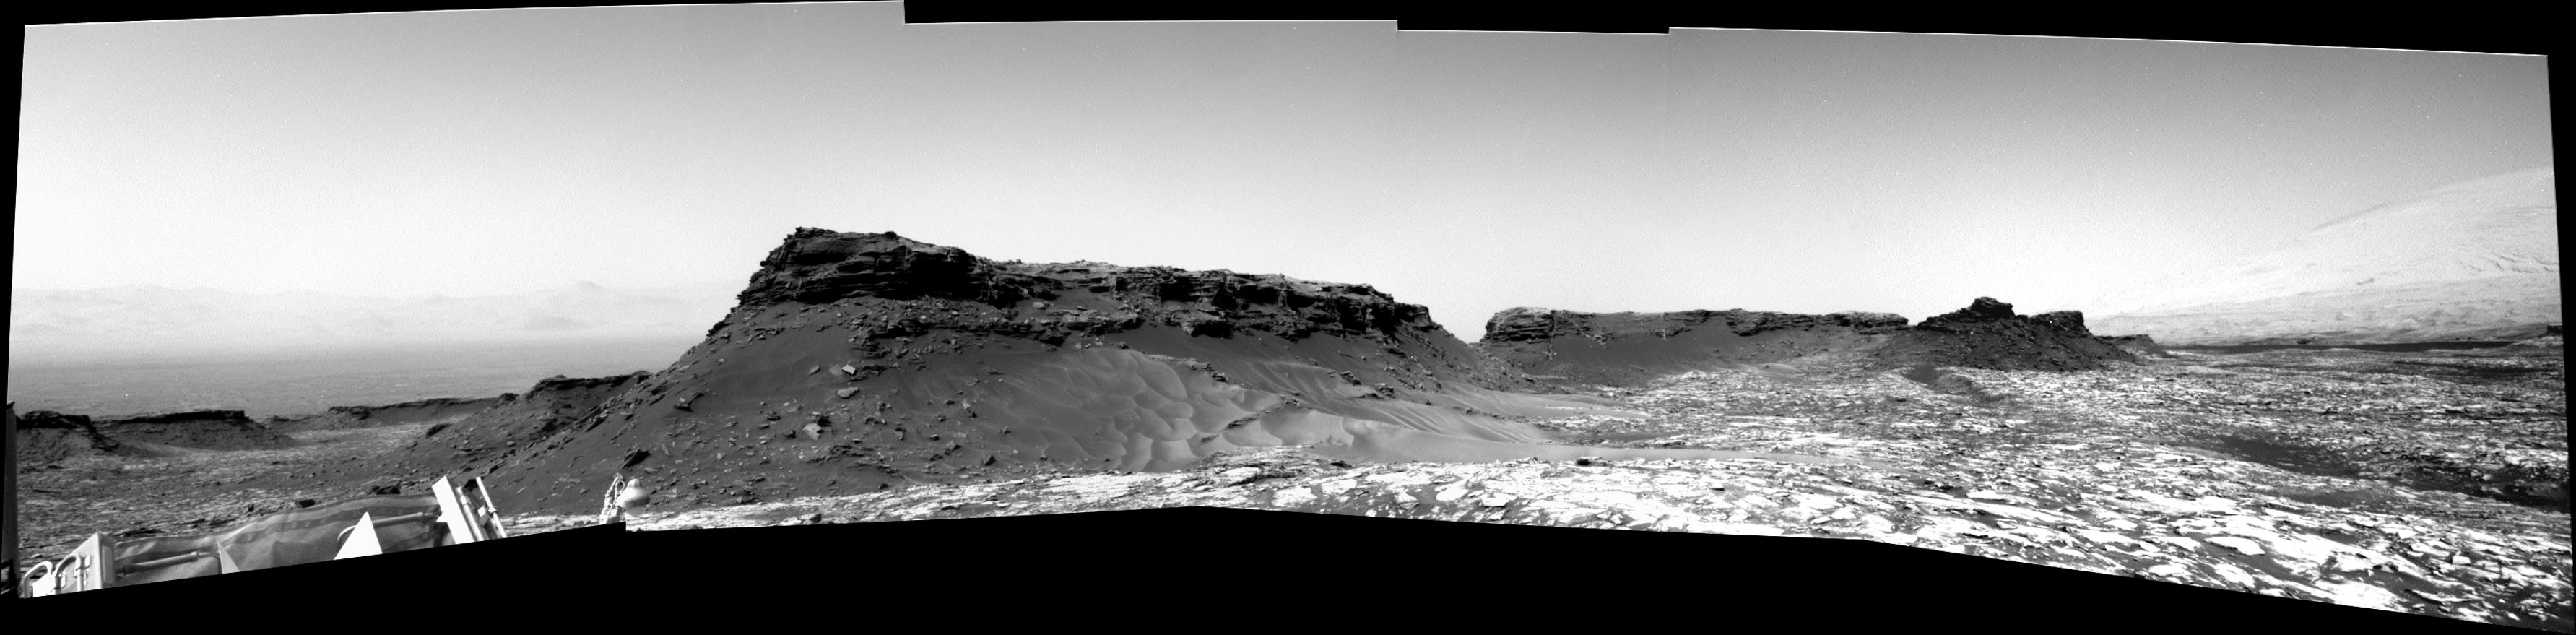 panoramic-curiosity-rover-bw-view-2-sol-1452-was-life-on-mars